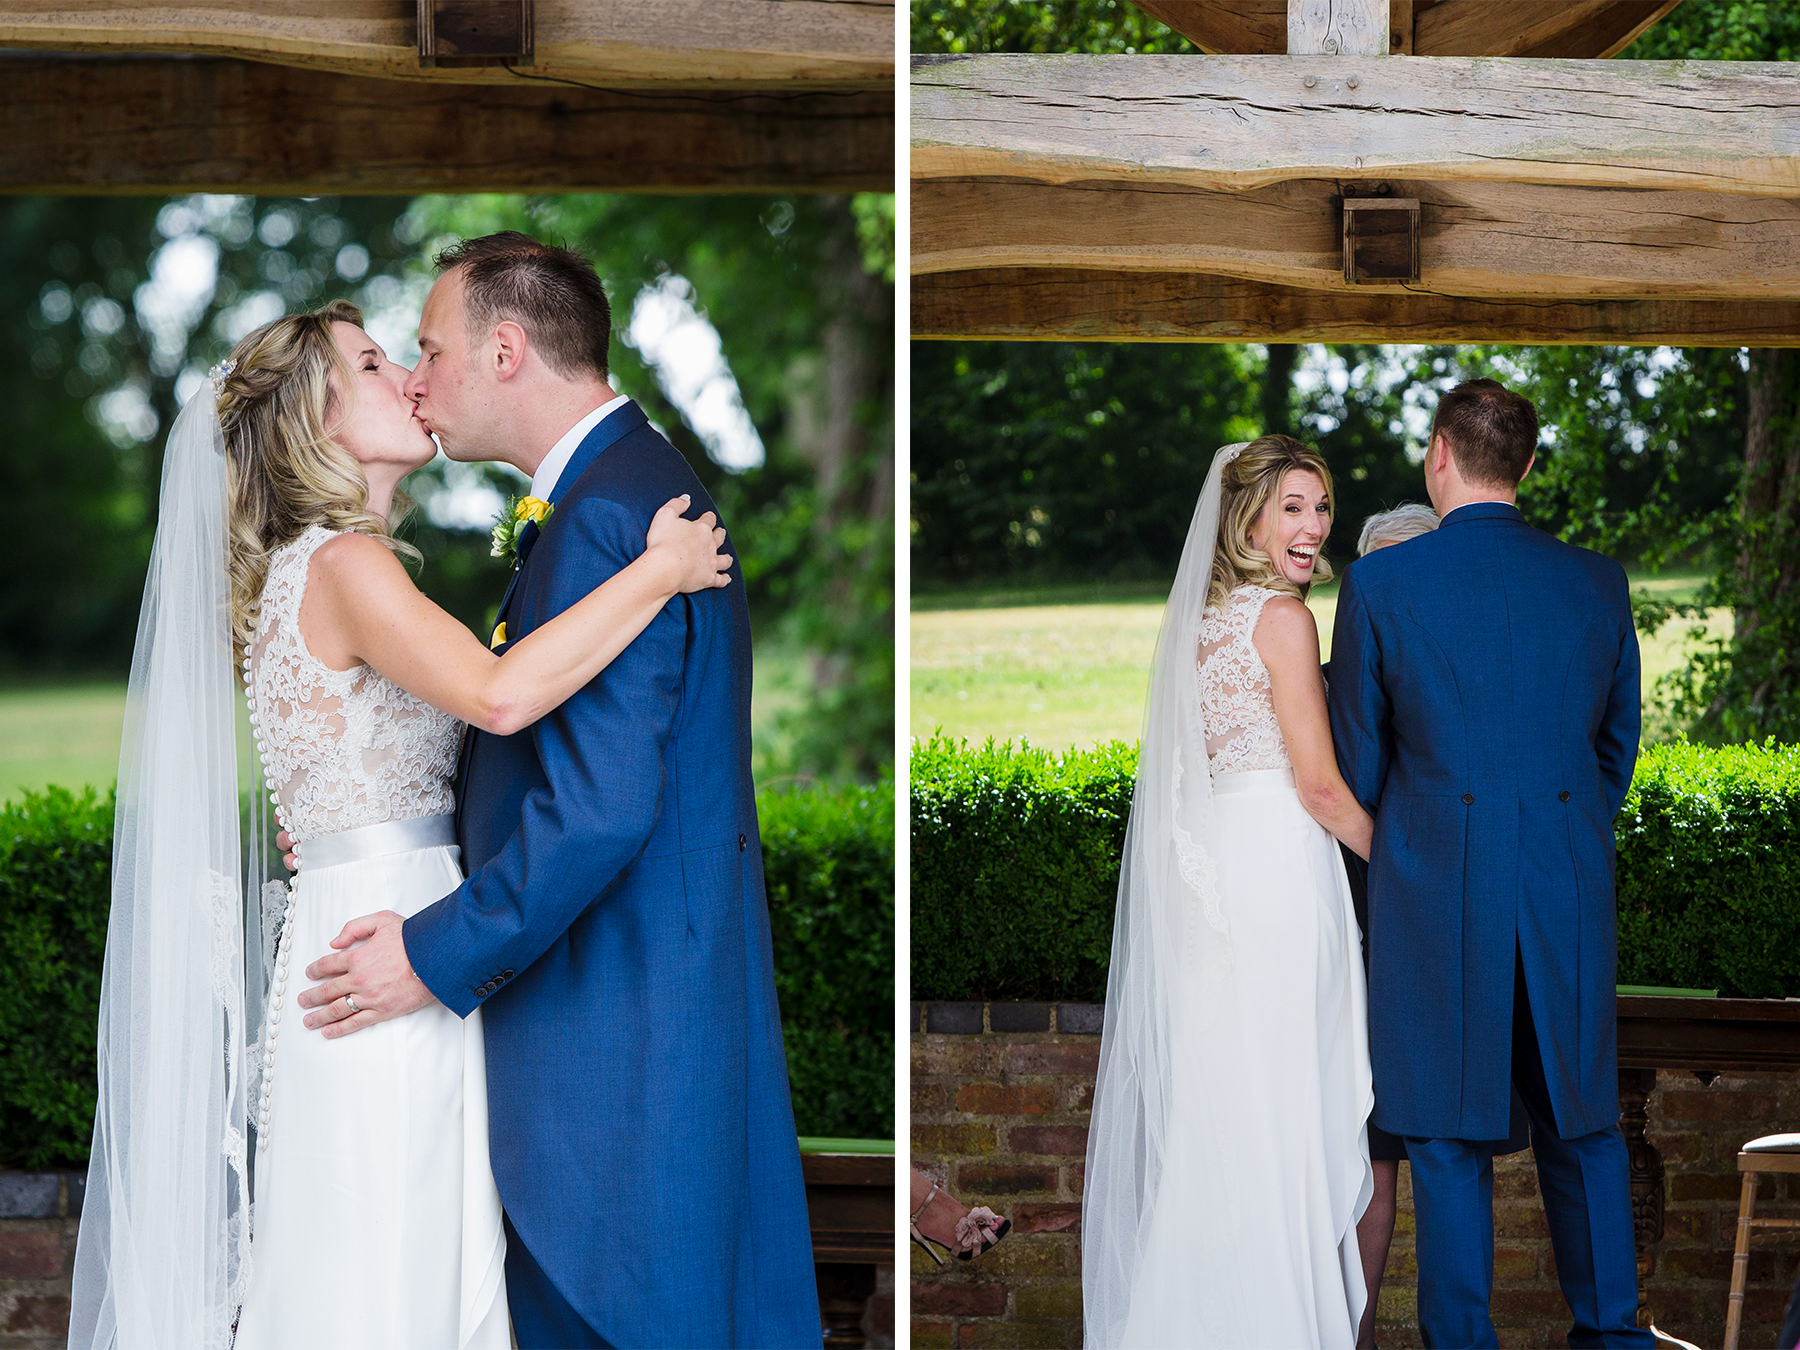 Wethele-Manor-Warwickshire-Wedding-Photographer